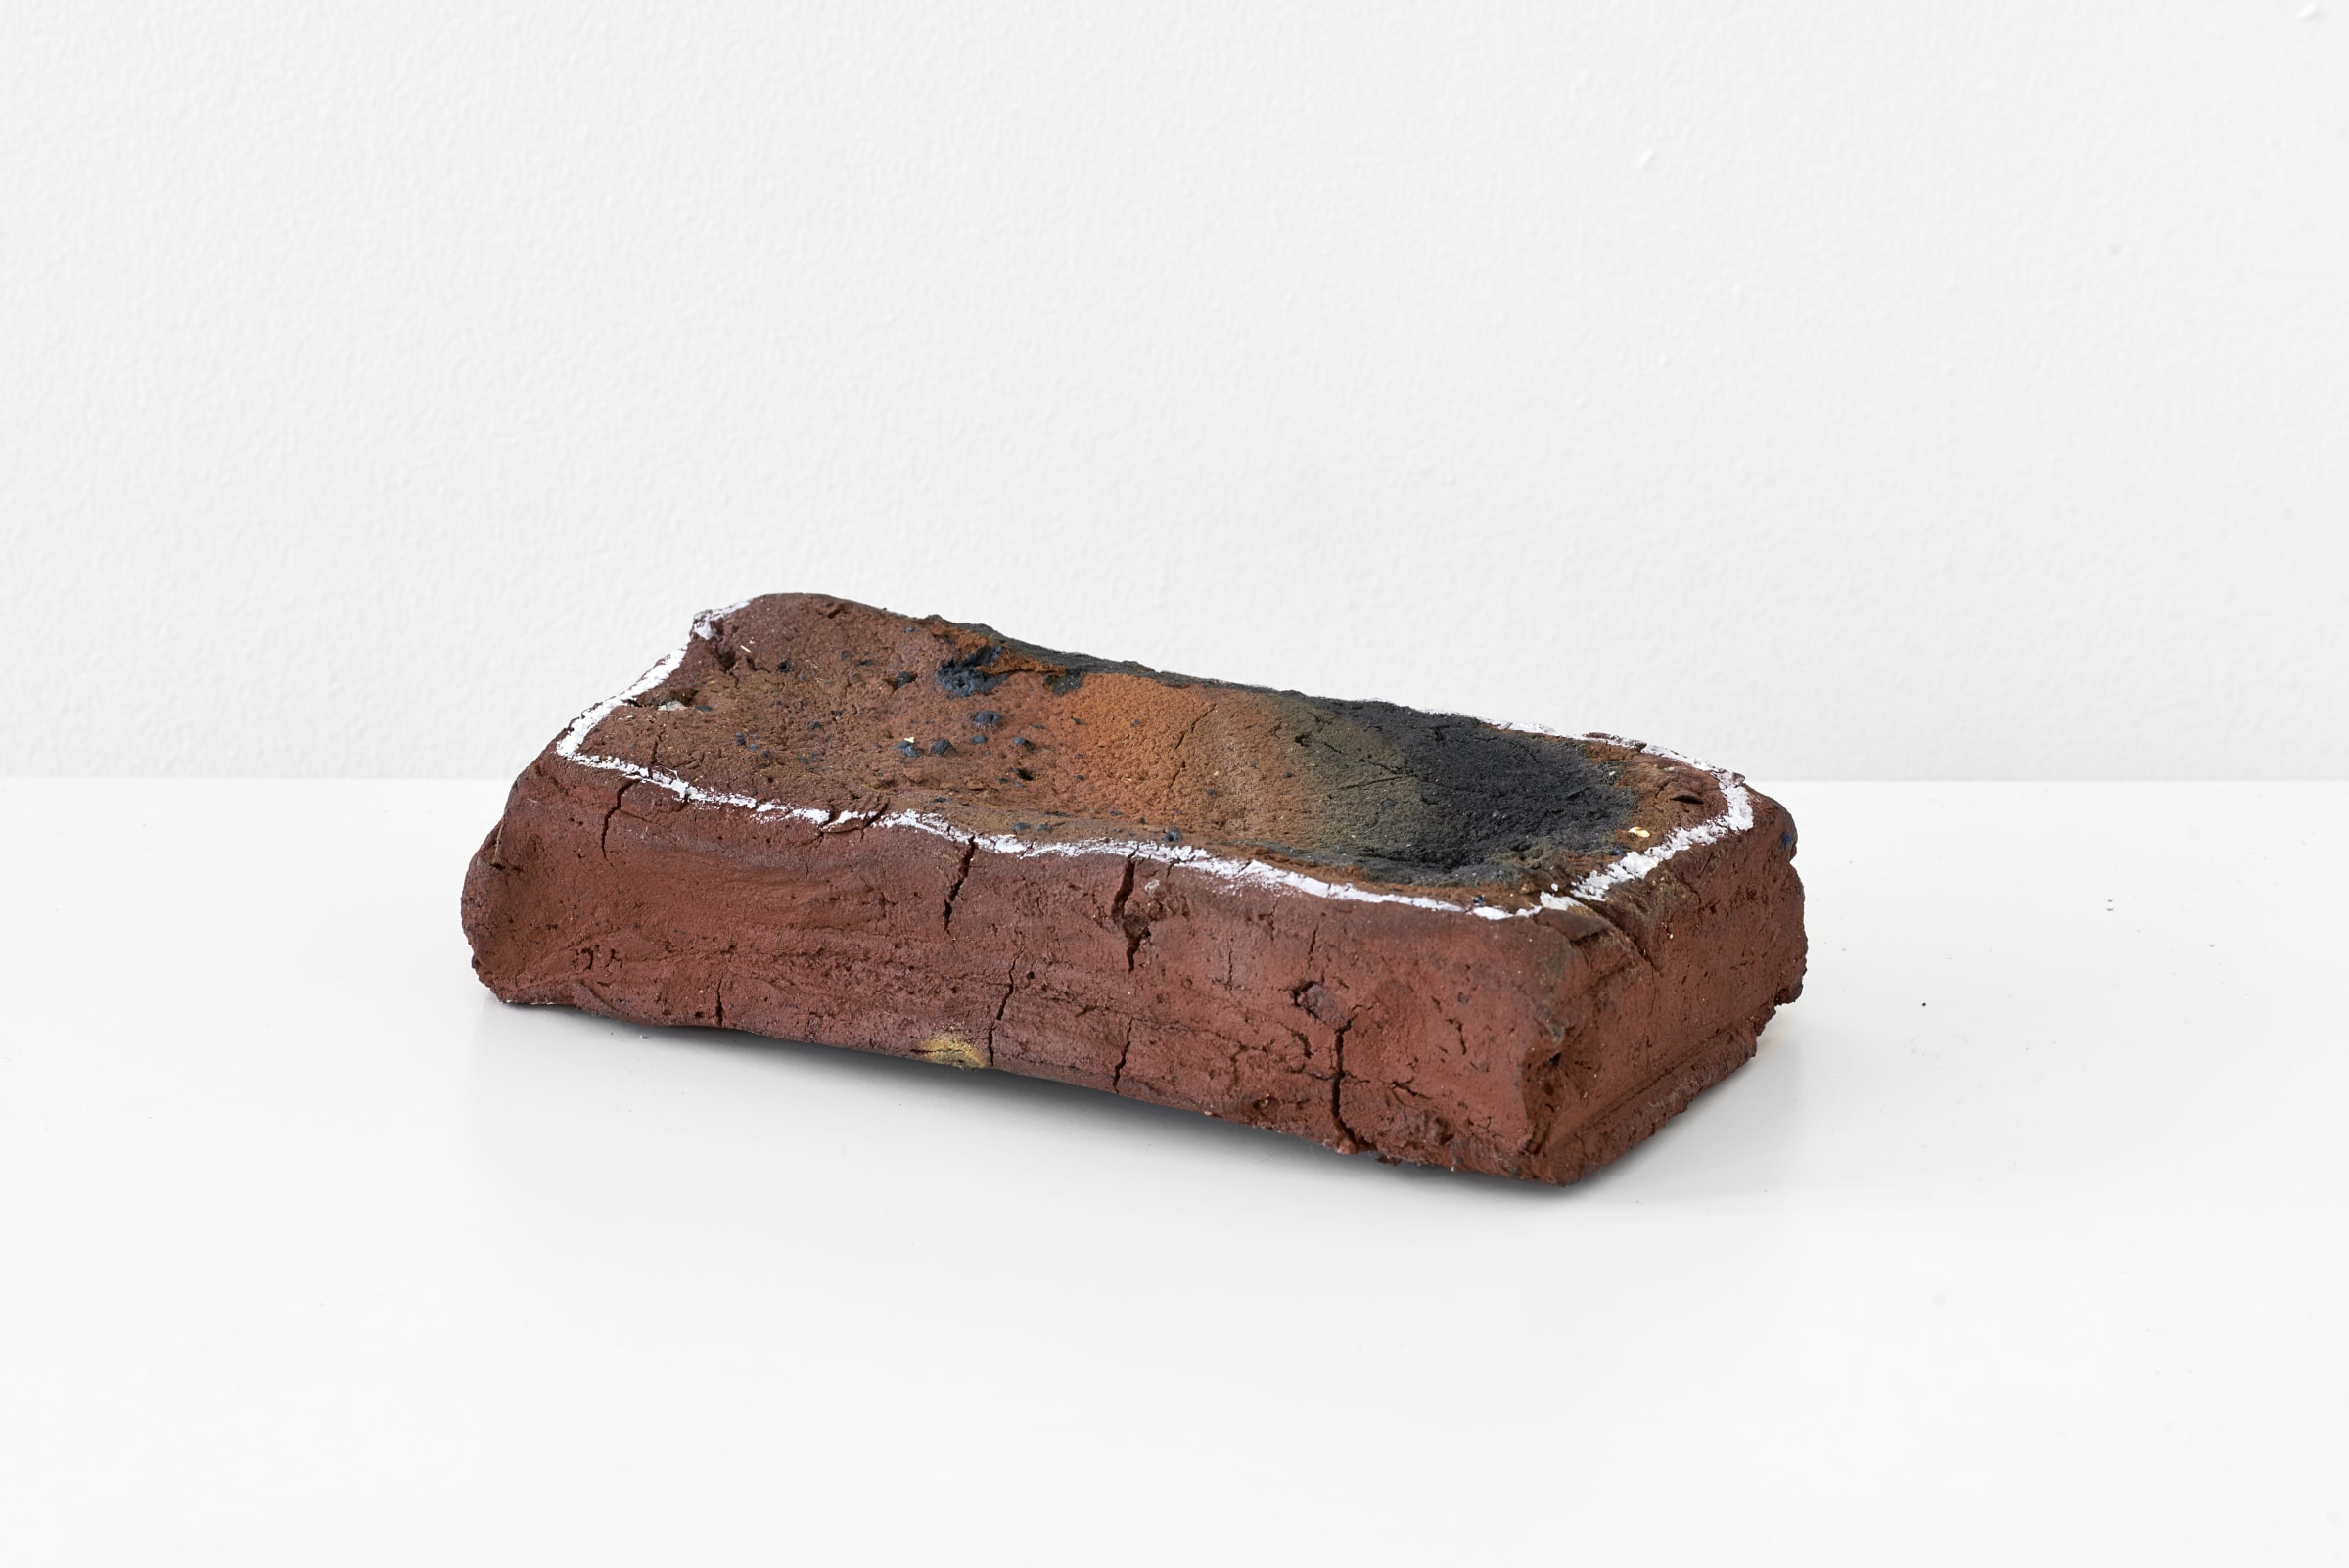 <span class=&#34;link fancybox-details-link&#34;><a href=&#34;/exhibitions/169/works/artworks10720/&#34;>View Detail Page</a></span><div class=&#34;medium&#34;>Handmade brick from local clay, correction fluid</div> <div class=&#34;dimensions&#34;>5.5 x 23.5 x 12 cm<br /> 2 1/8 x 9 1/4 x 4 3/4 in</div>